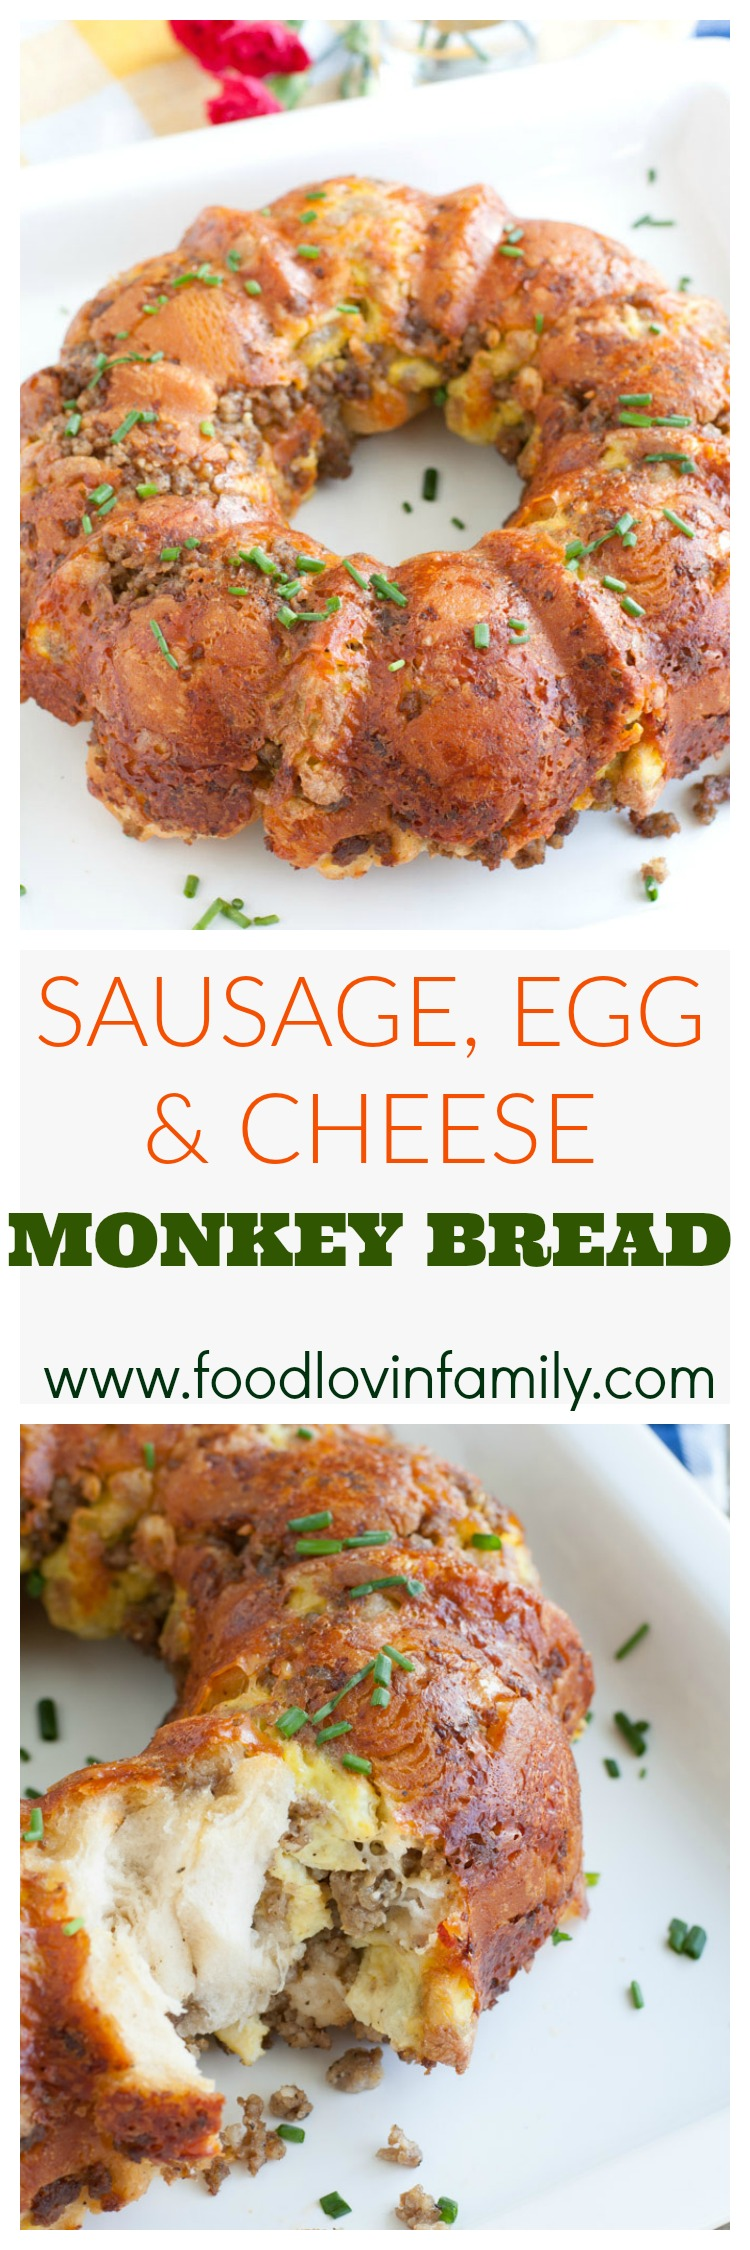 sausage egg and cheese monkey bread pin